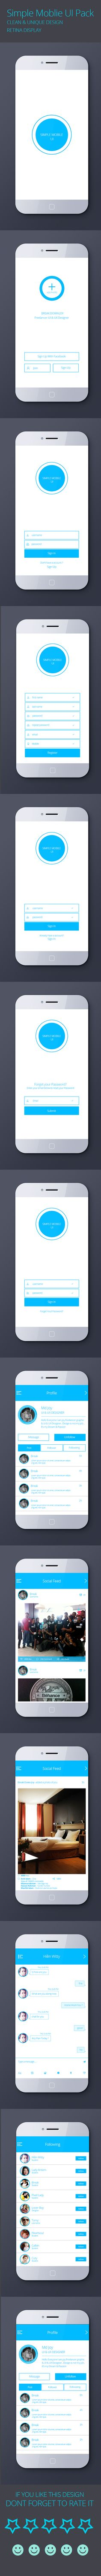 Simple_Flat_Mobile_UI_Design_Free_PSD by Md Joy, via Behance